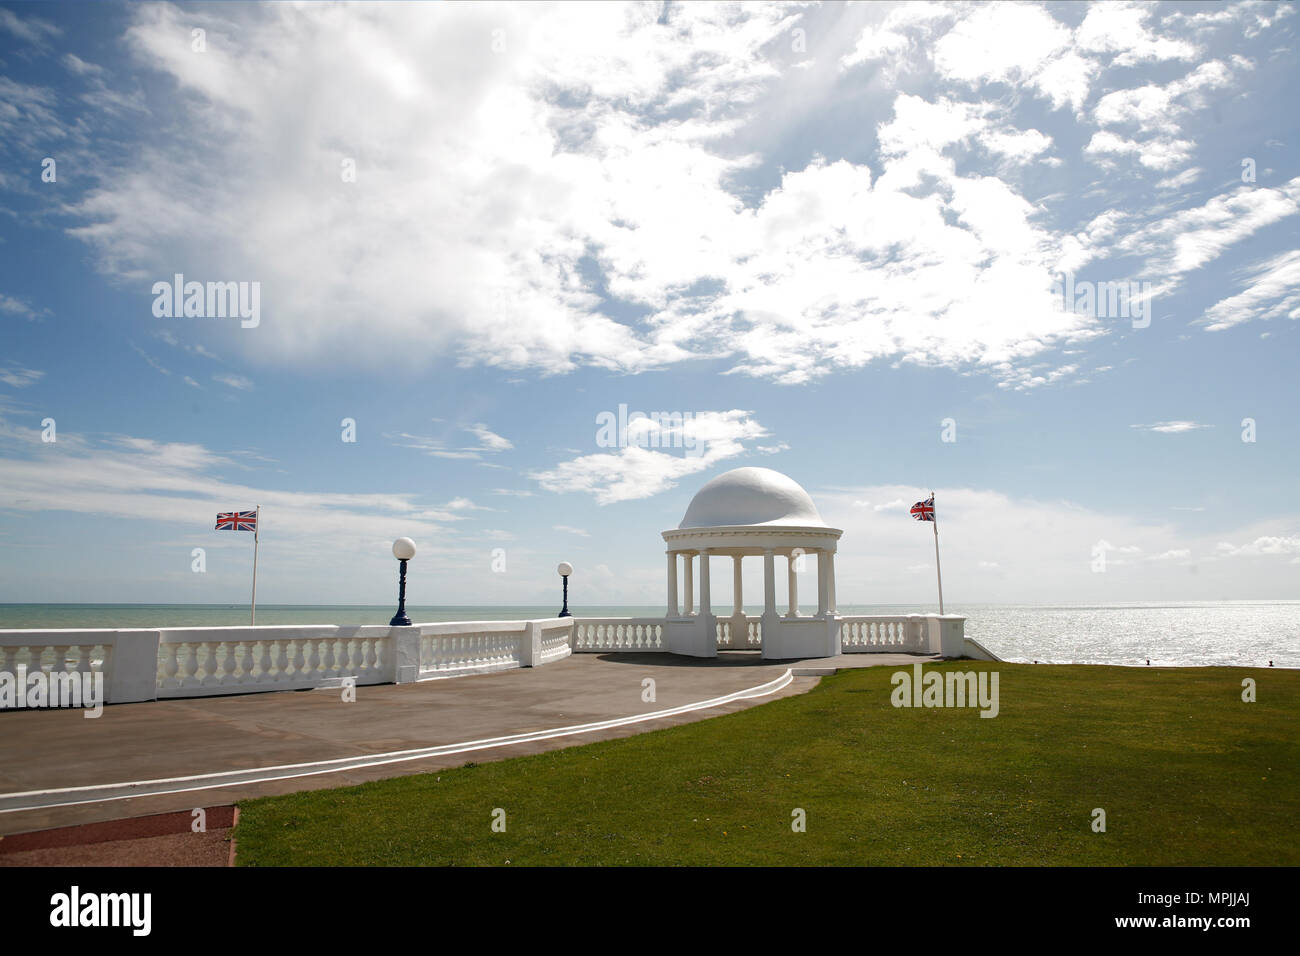 The De La Warr Pavillion, exterior of the Art Deco Gallery and Arts Centre, building constructed in 1935 and designed by the architects Erich Mendelsohn and Serge Chermayeff. Bexhill on Sea, East Sussex.14 August 2008 --- Image by © Paul Cunningham - Stock Image